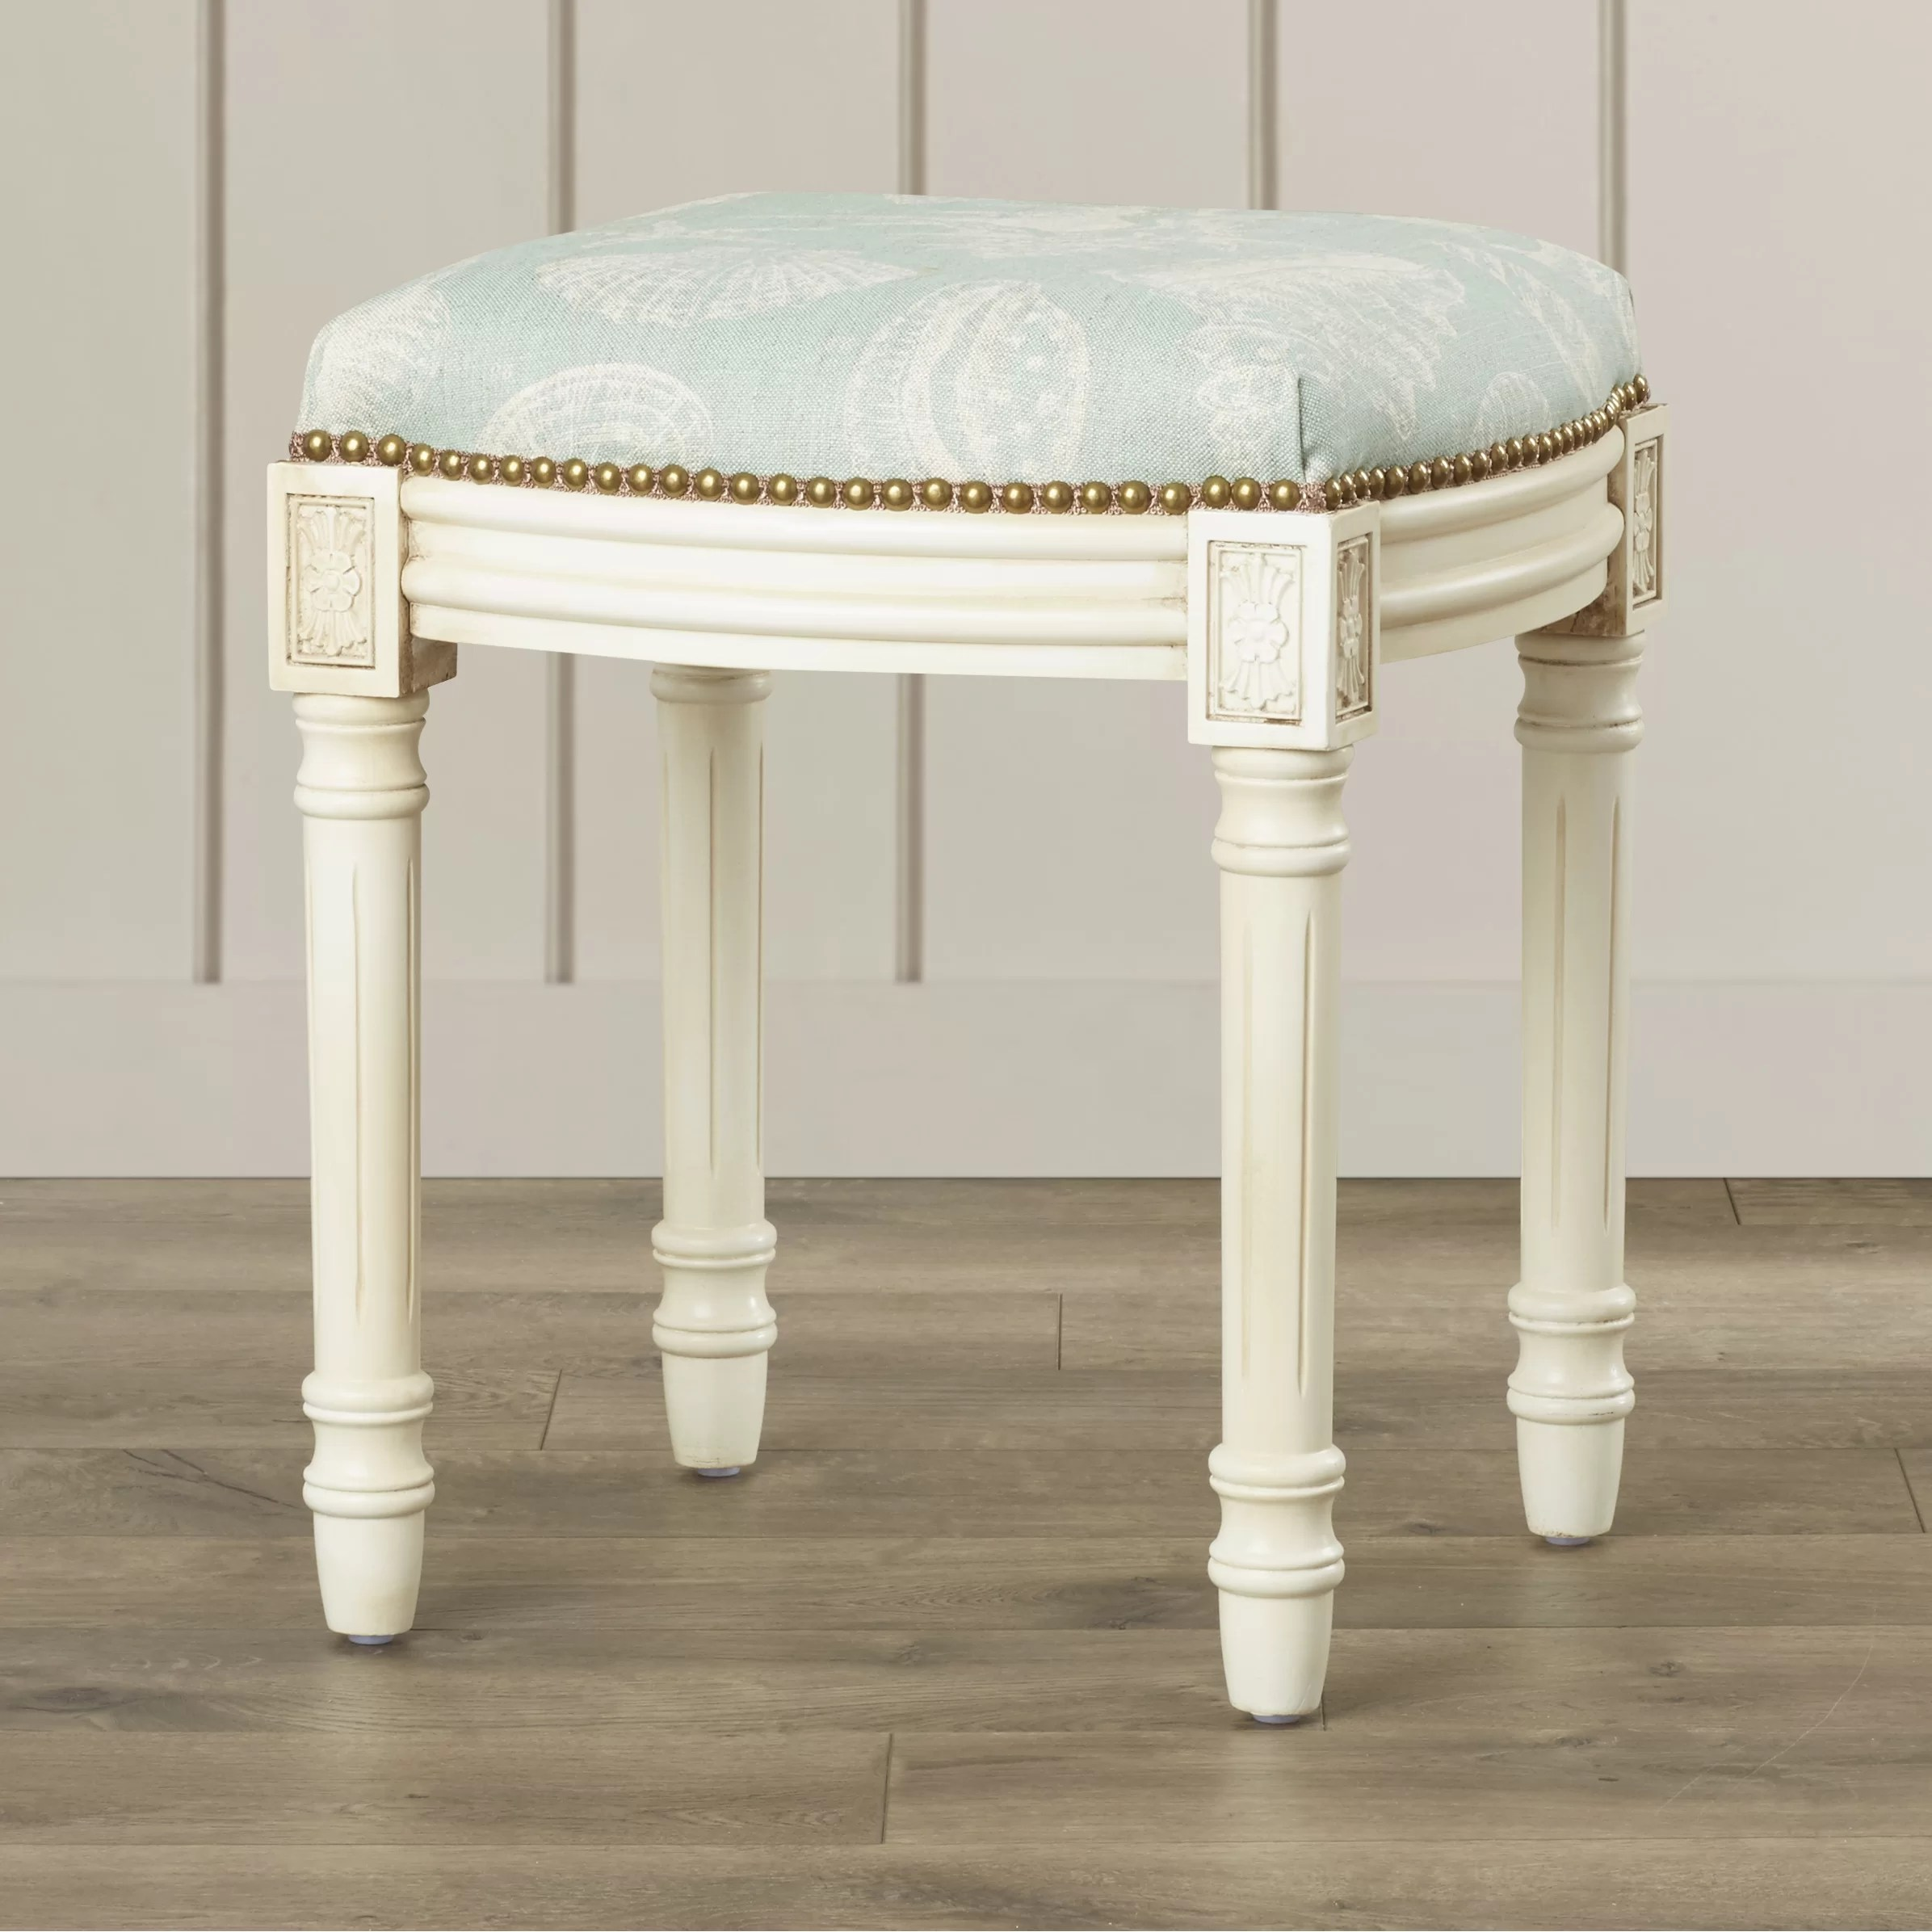 123 Creations Coastal Seashells Linen Upholstered Vanity